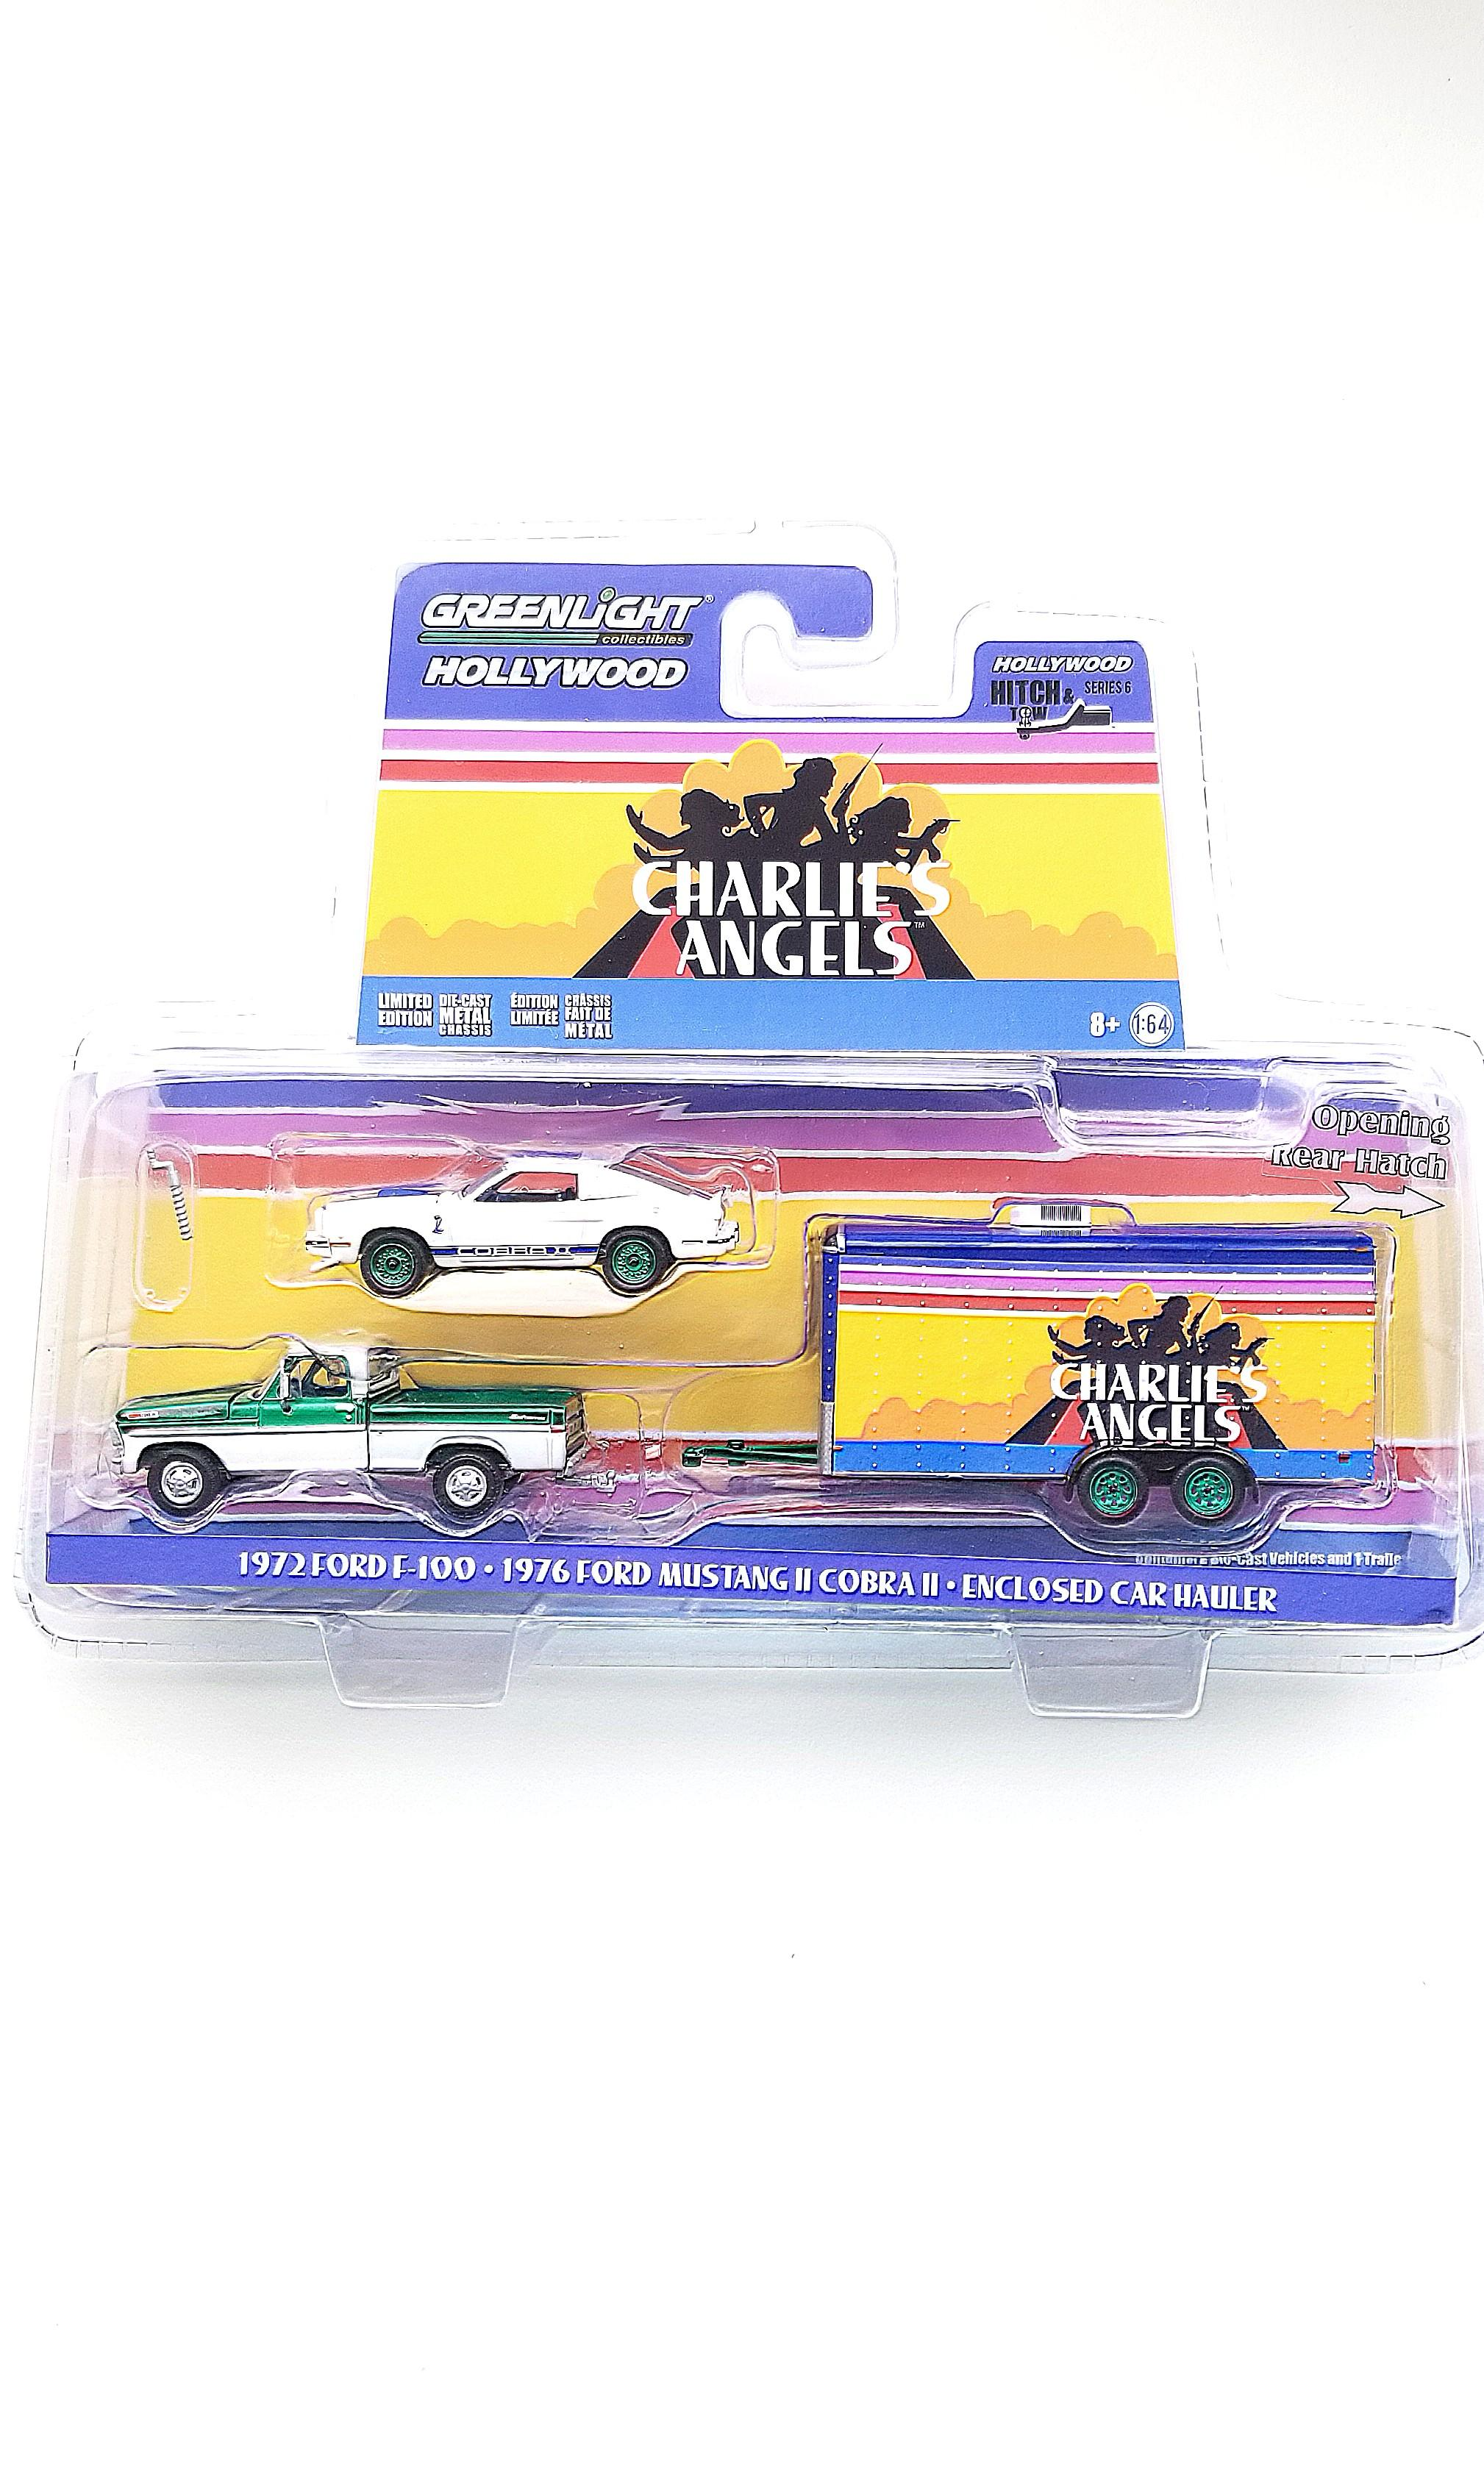 CHASE: Greenlight Hollywood Charlie's Angels Ford F-100, Mustang CobraII, and Hauler